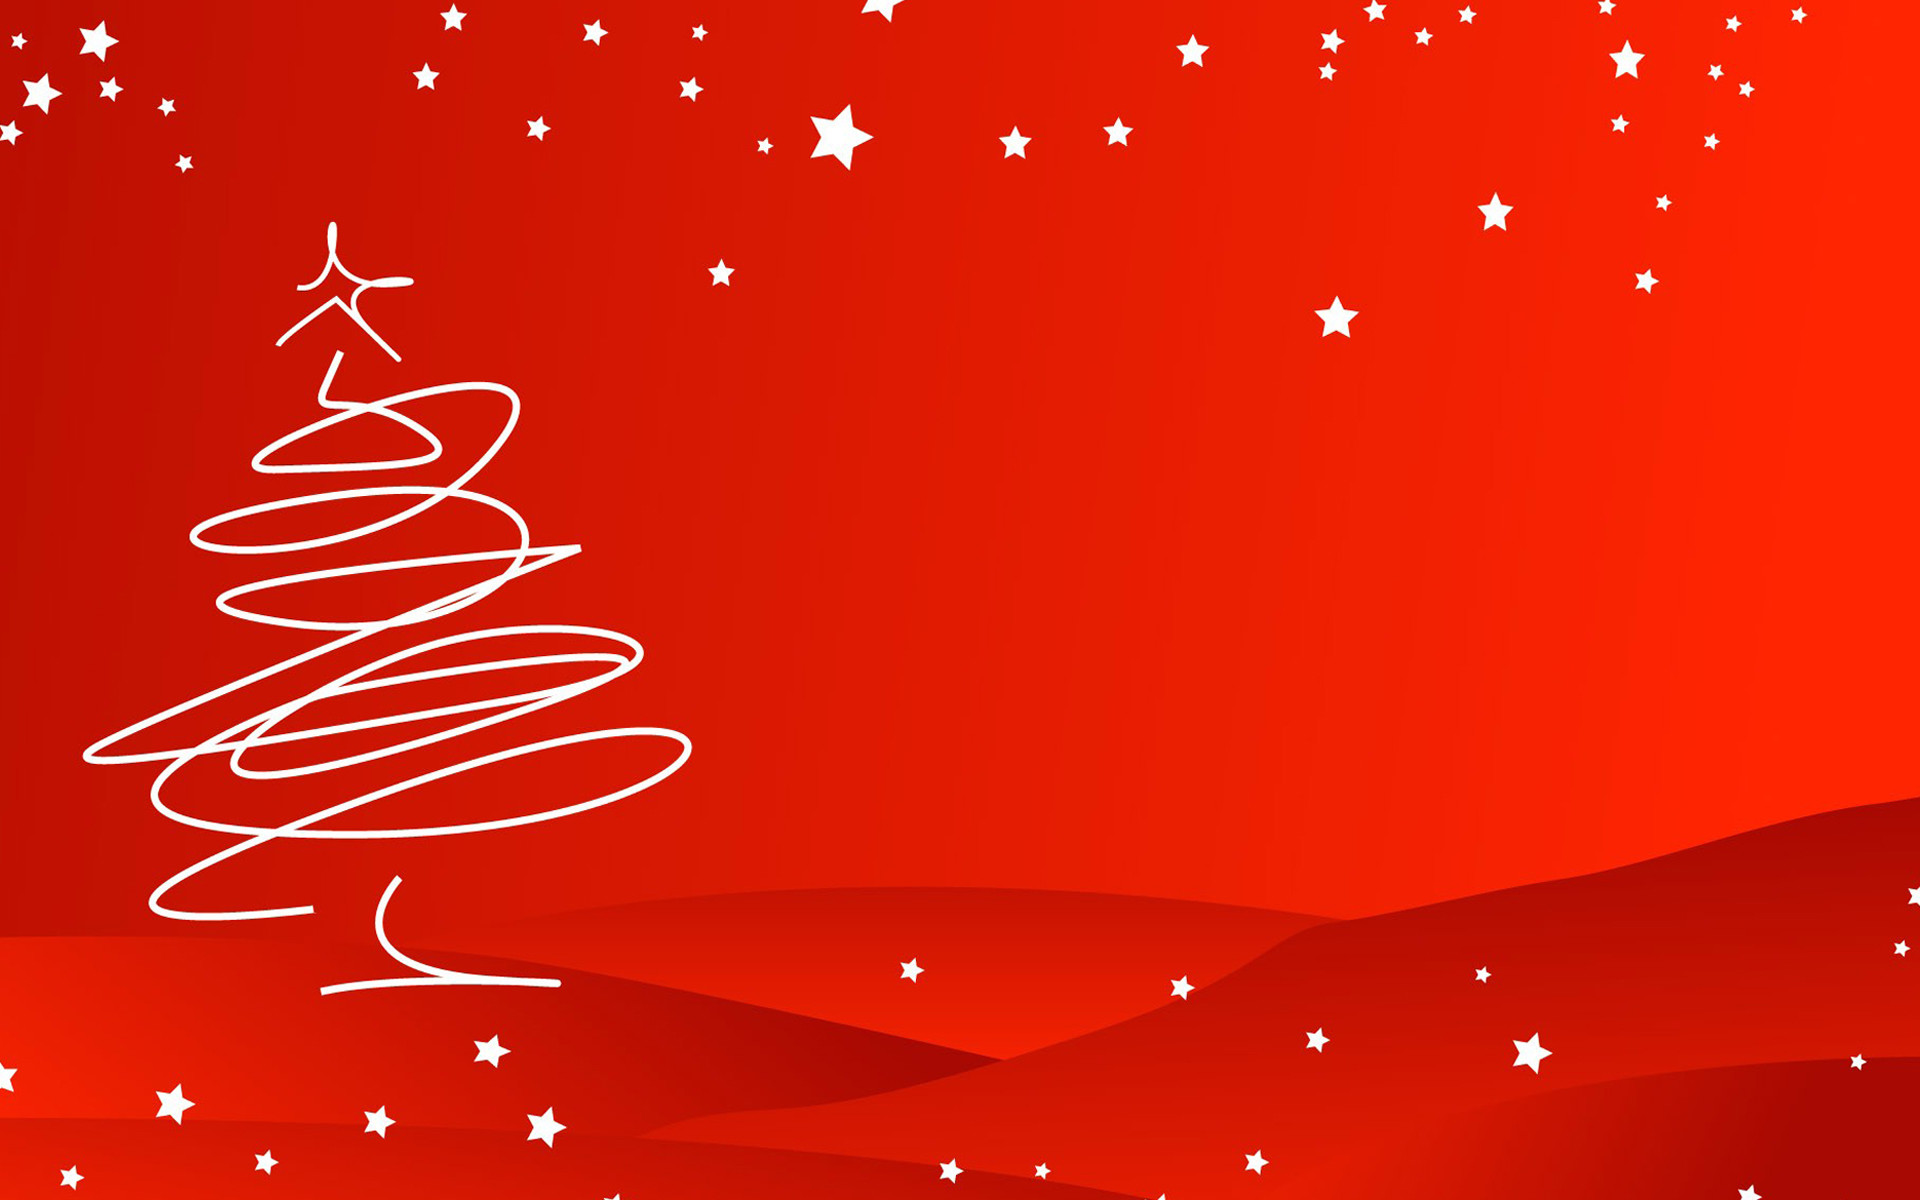 Christmas Background Vector.Christmas Background Image Wallpapertag